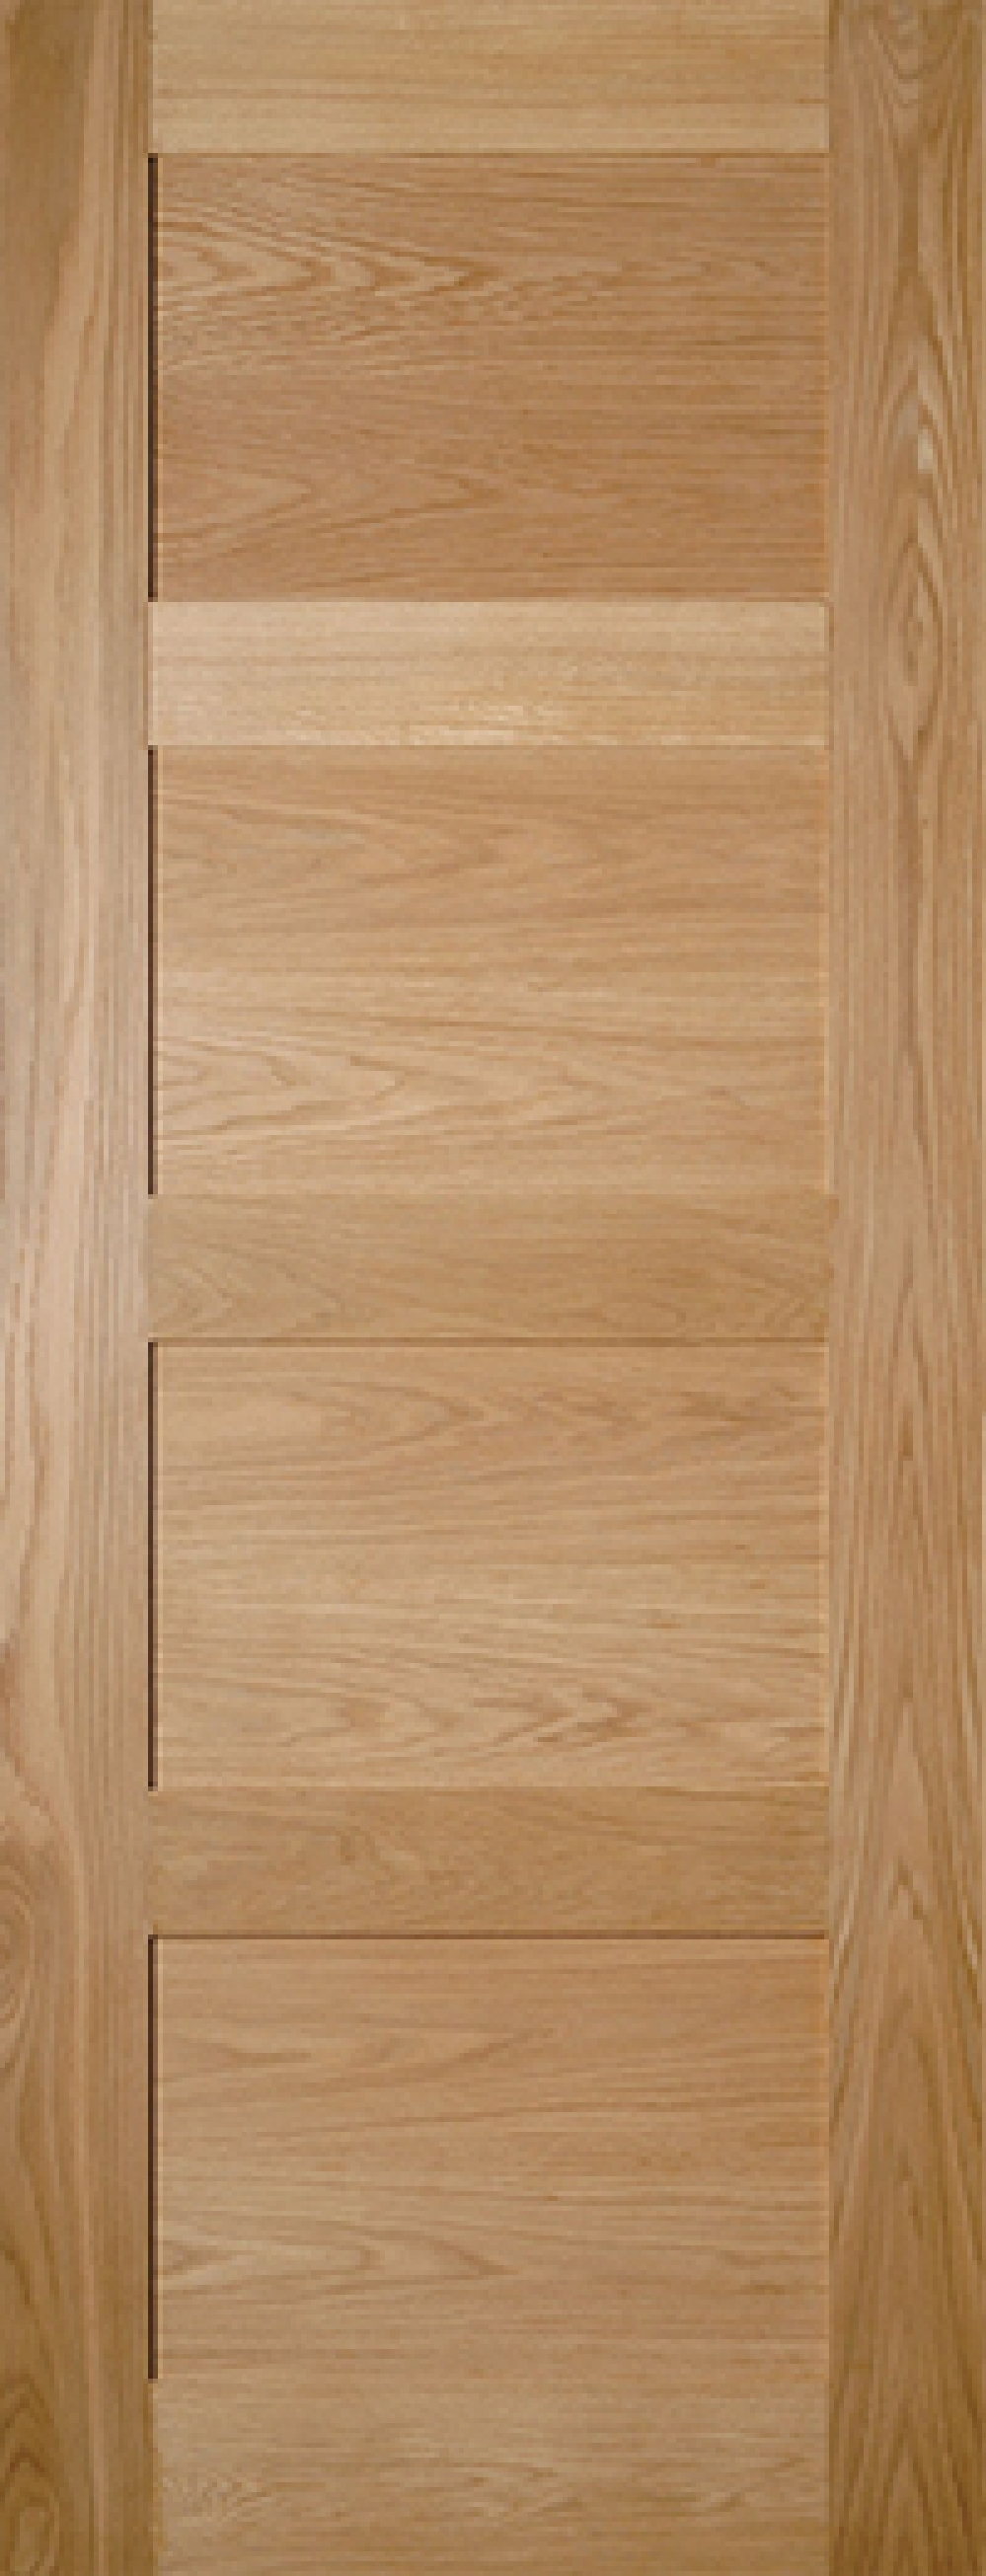 Coventry Prefinished Shaker 4 Panel Oak Door